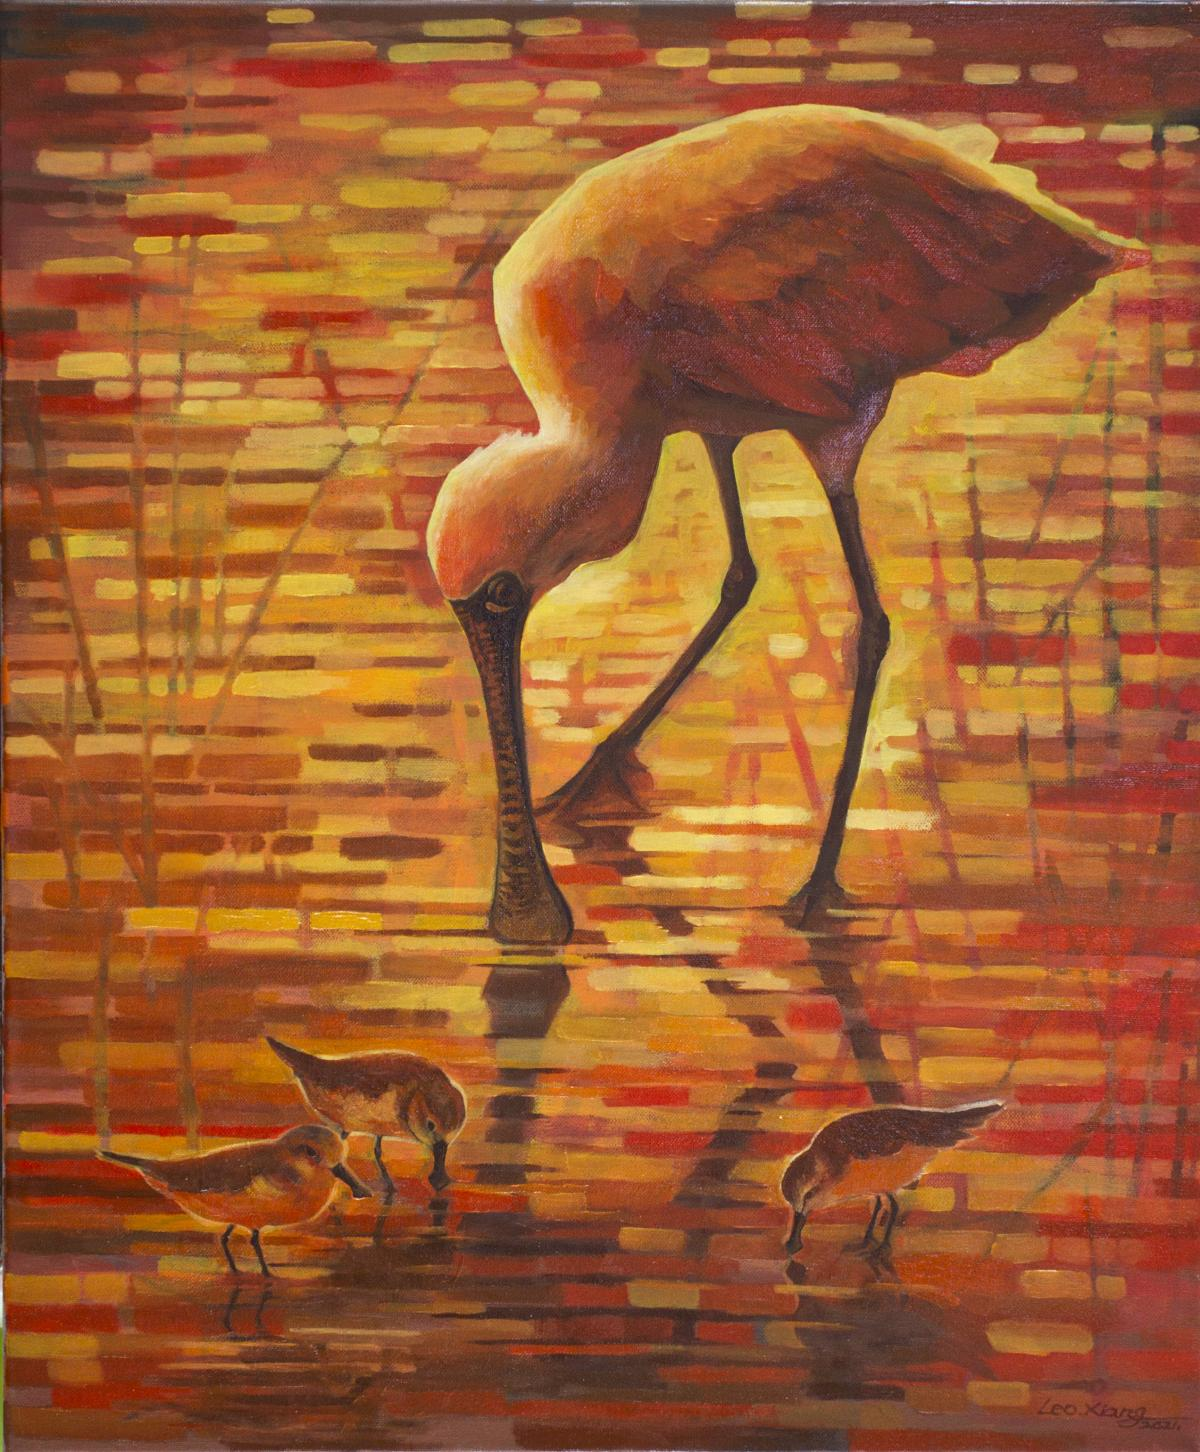 Golden Pool   Wallhanging by Leo Xiang   Artists for Conservation 2021